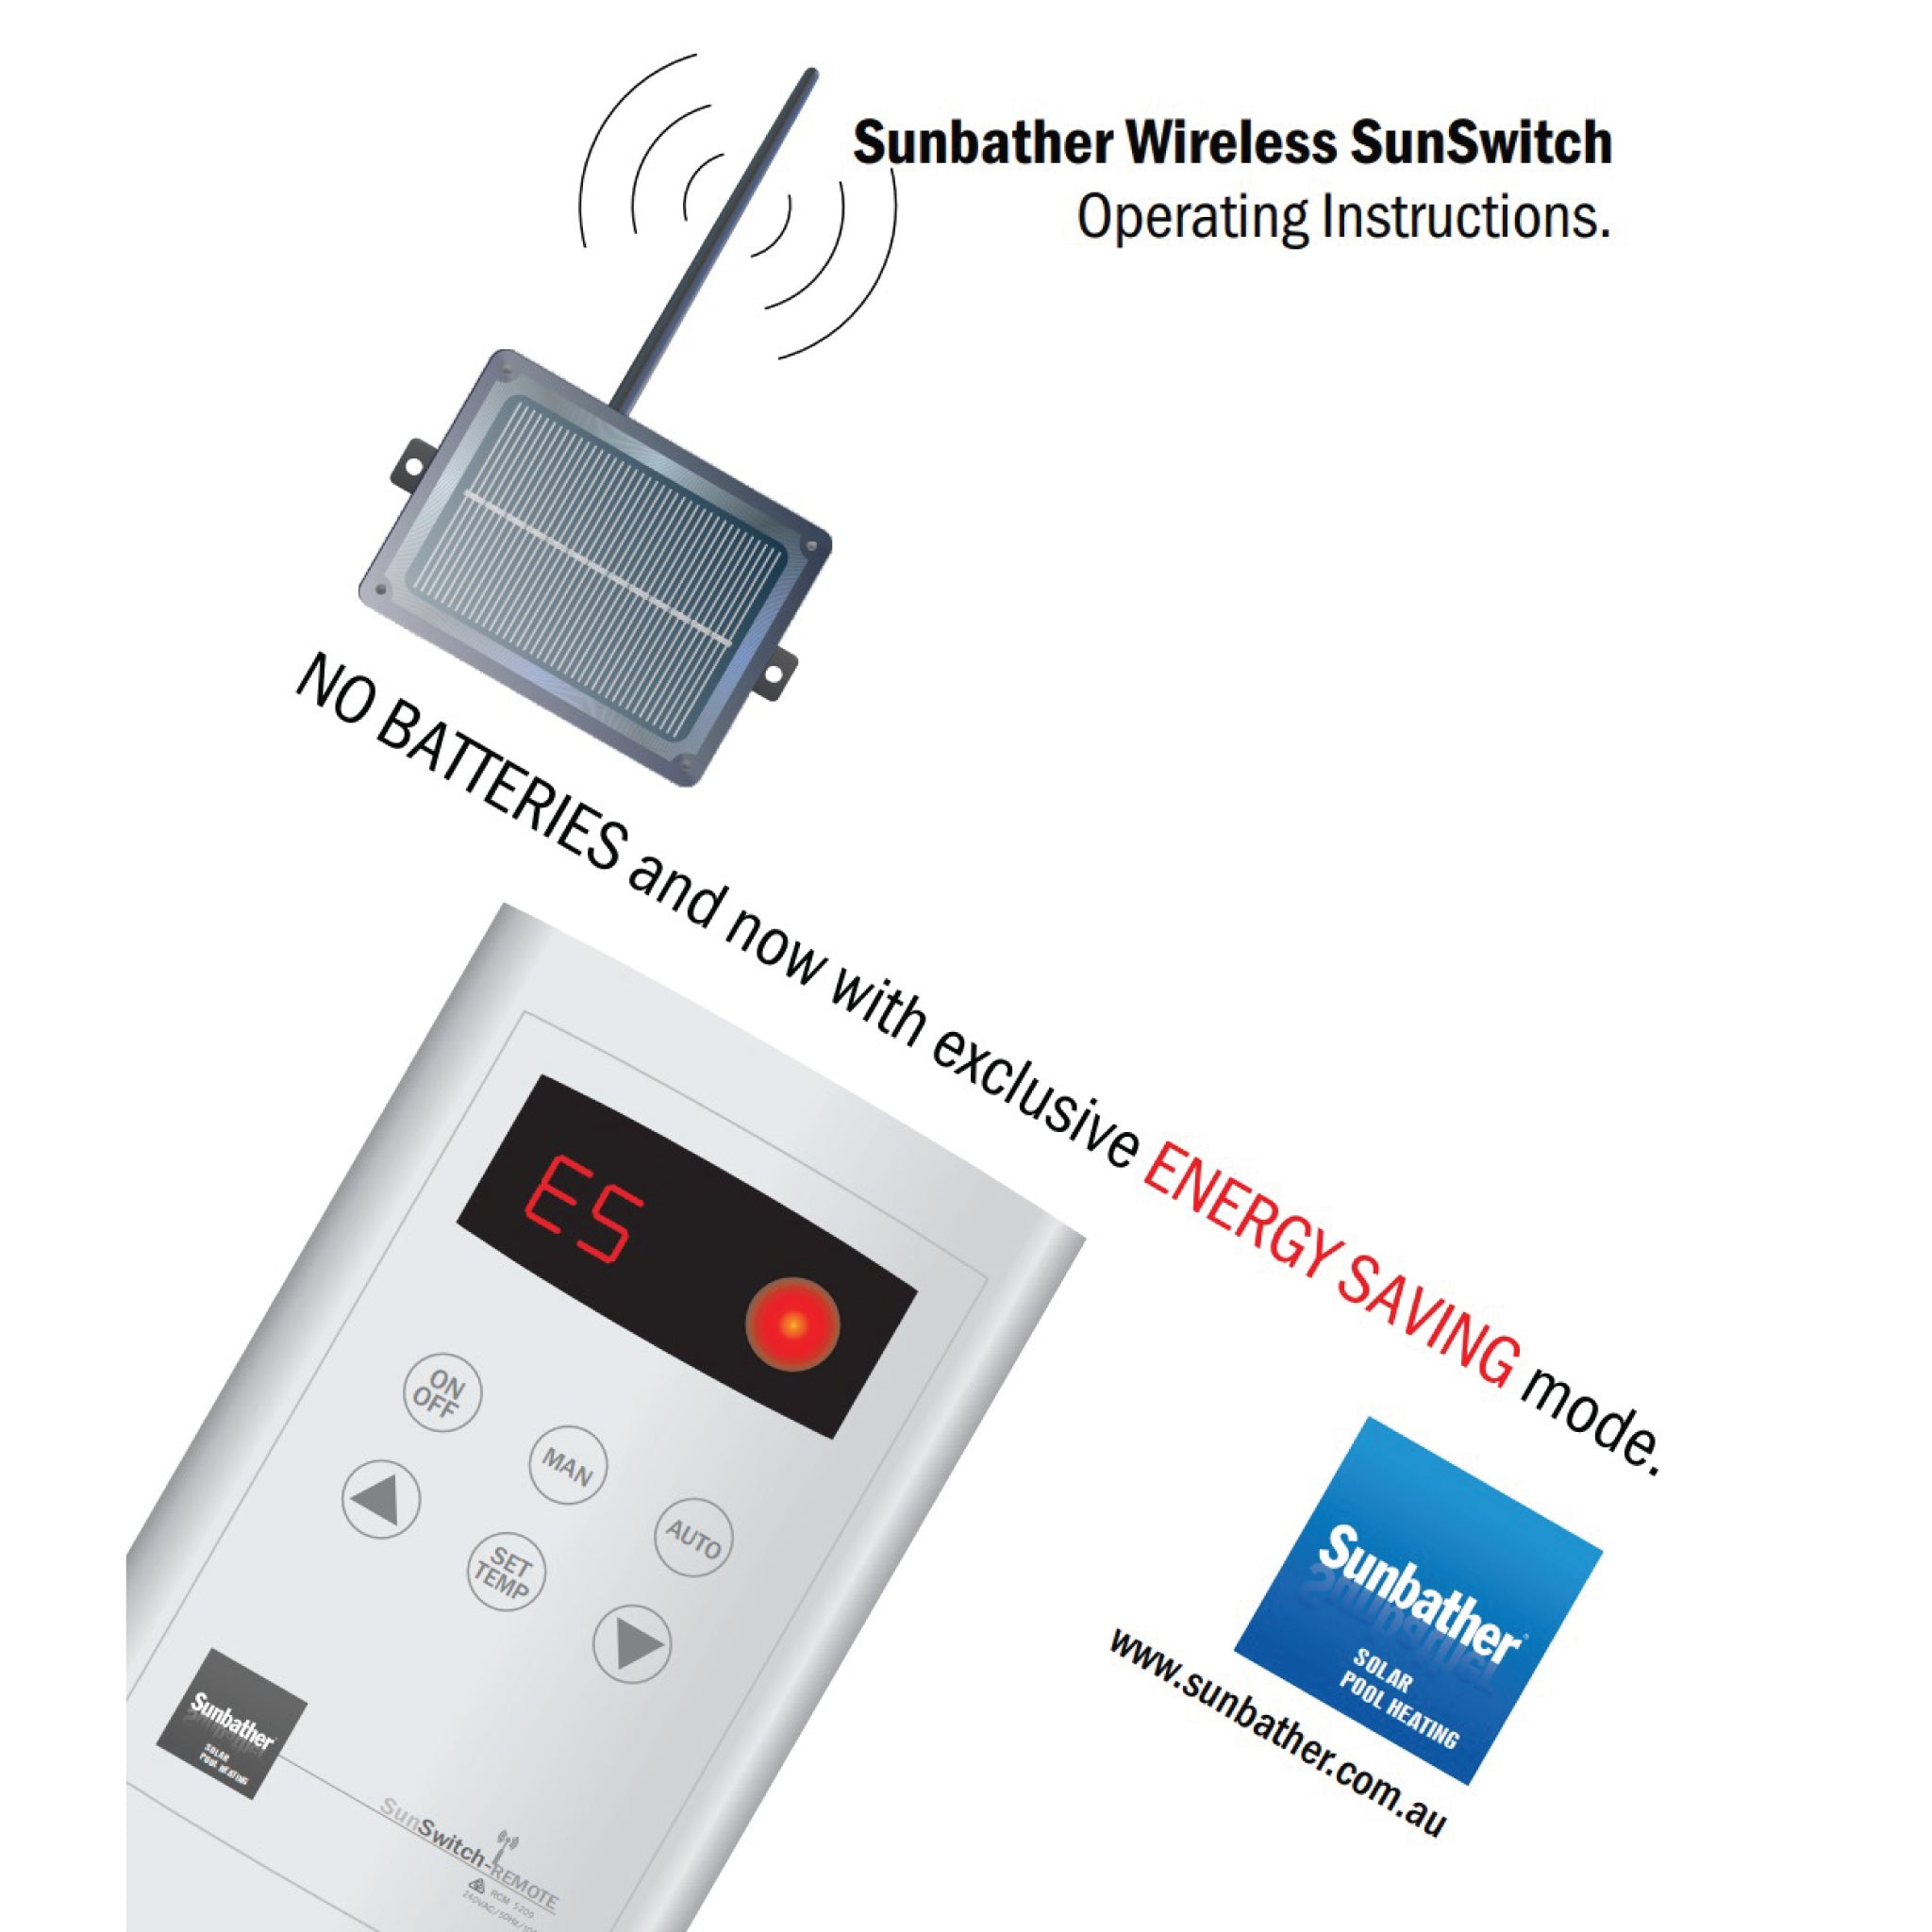 Sunbather Sunswitch wireless controller